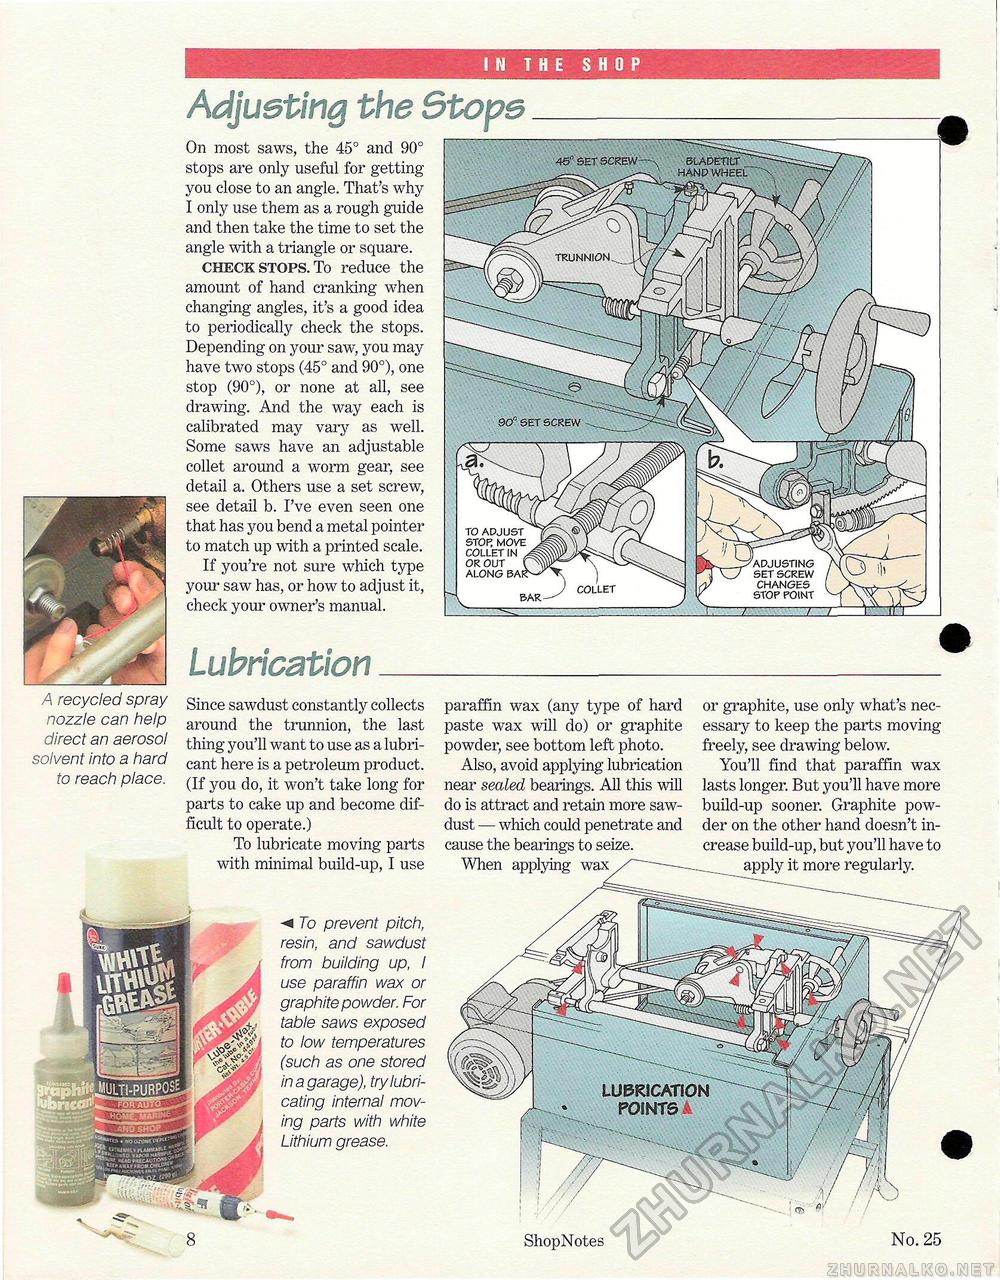 25 - Special Table Saw Issue, страница 8